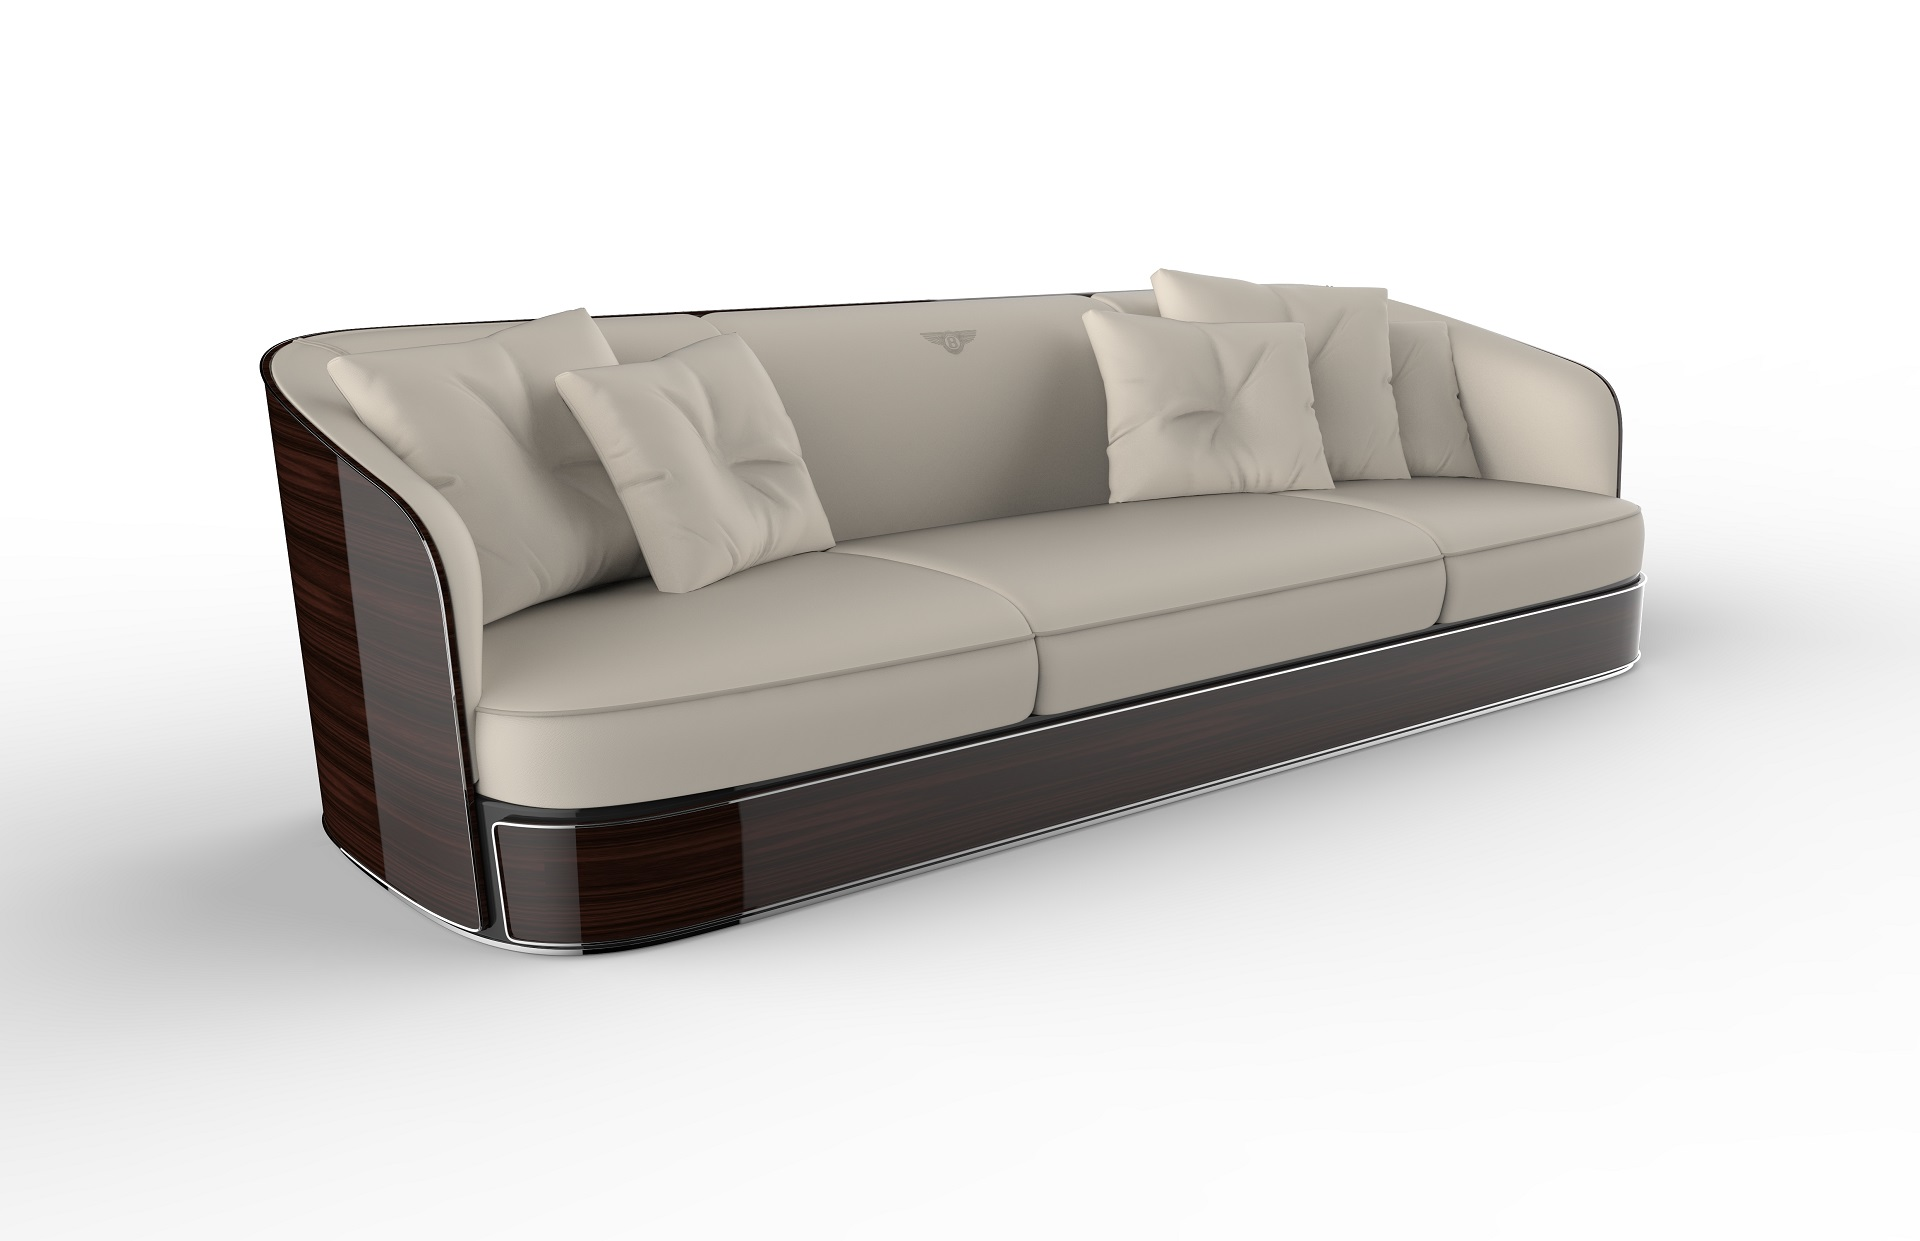 Bentley's $29,220 Bampton sofa